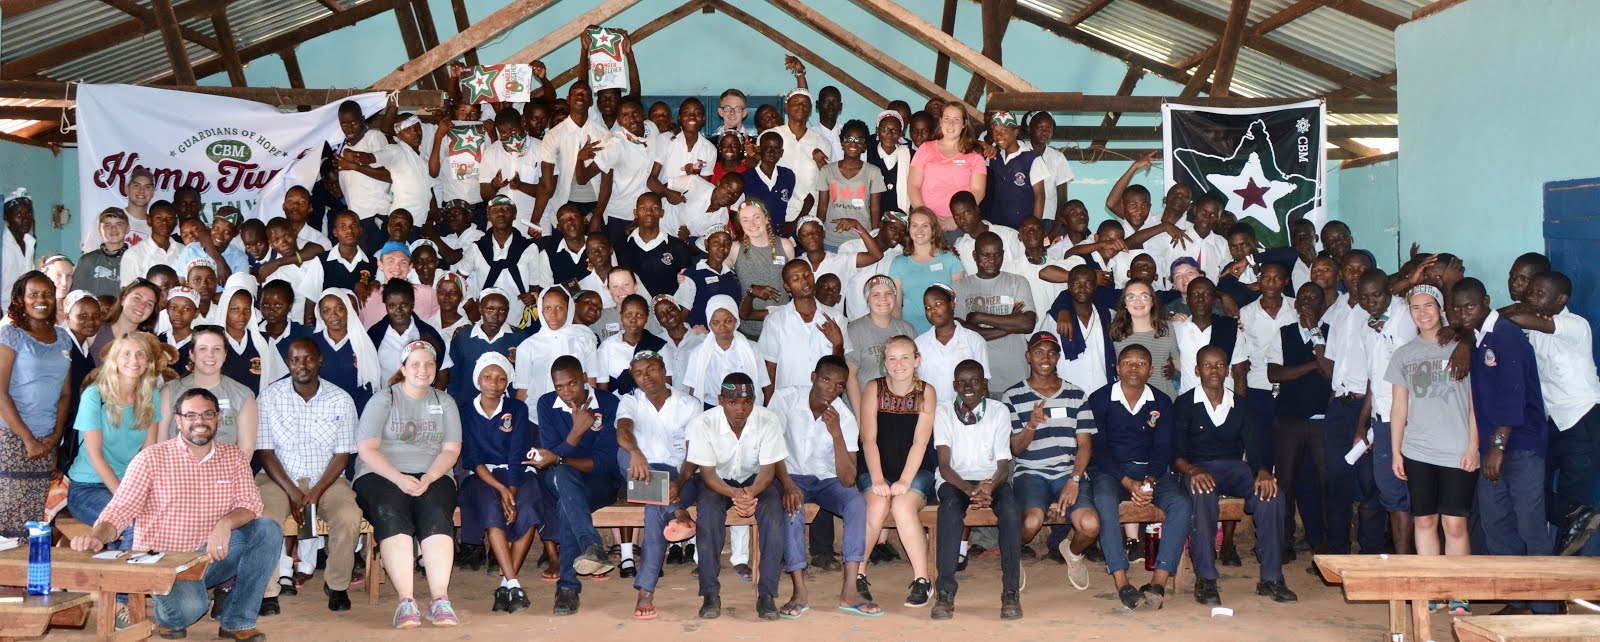 Form 1 (grade 9's) during their day of camp